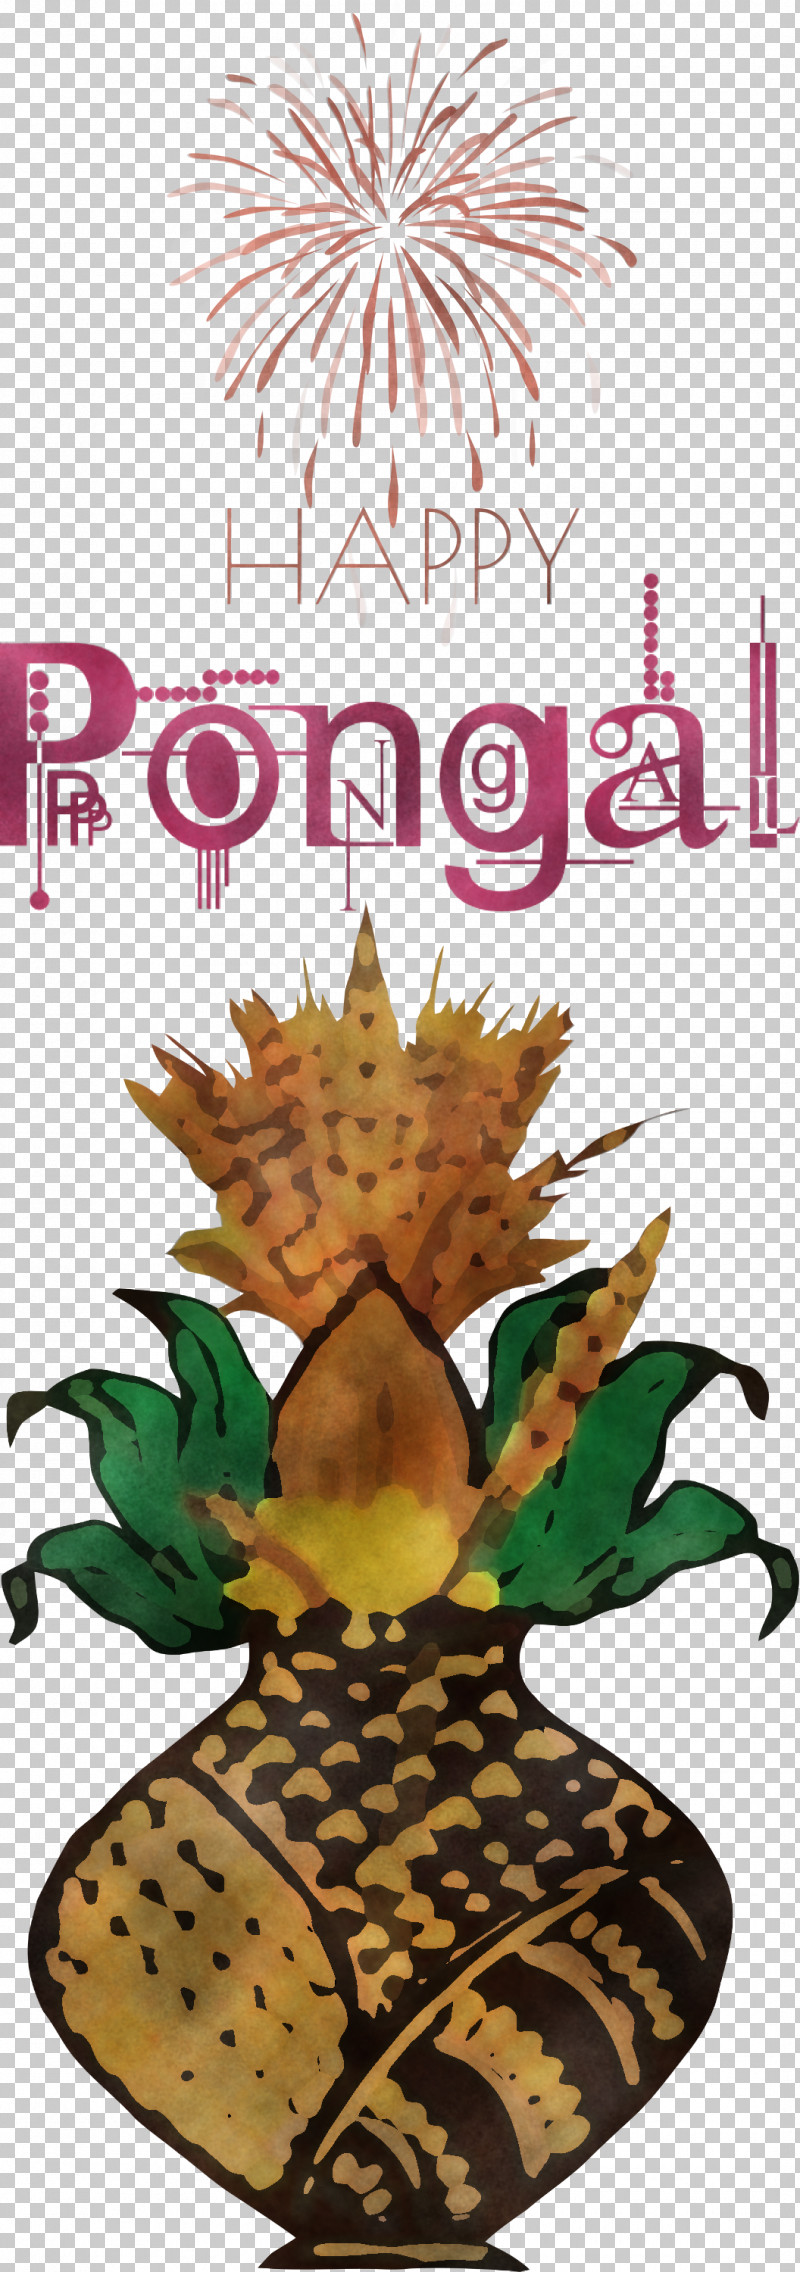 Pongal Happy Pongal PNG, Clipart, Arts, Biology, Festival, Flower, Happy Pongal Free PNG Download